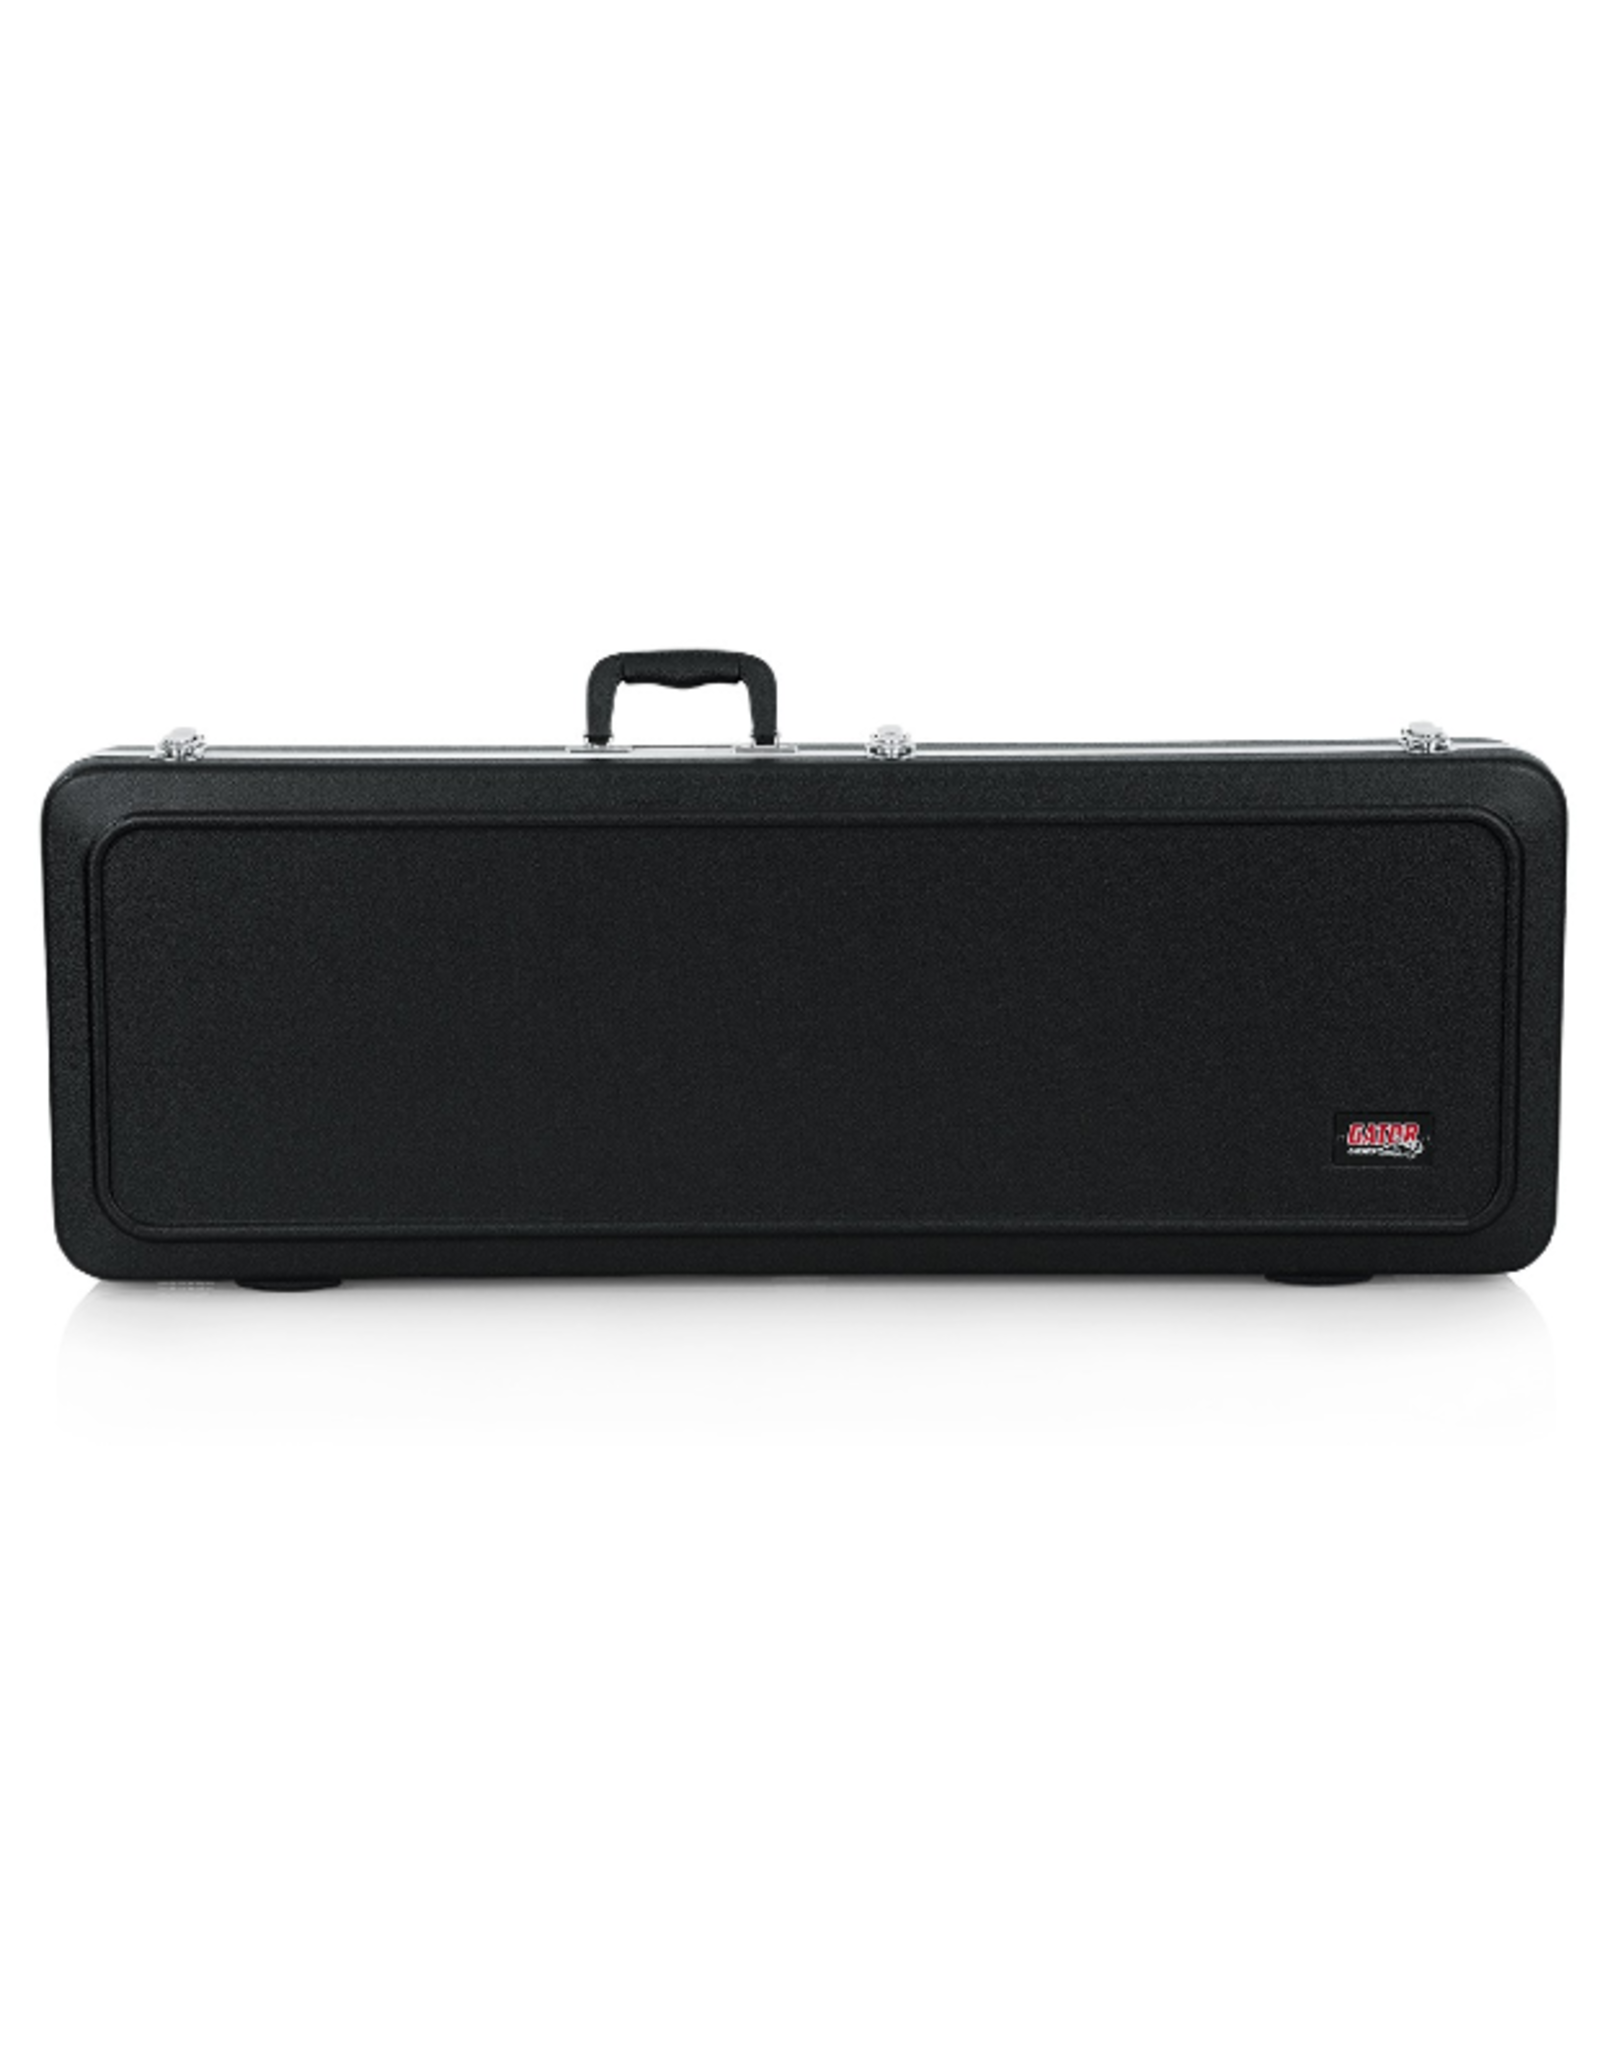 Gator Gator Classic Deluxe Molded Electric Guitar Case